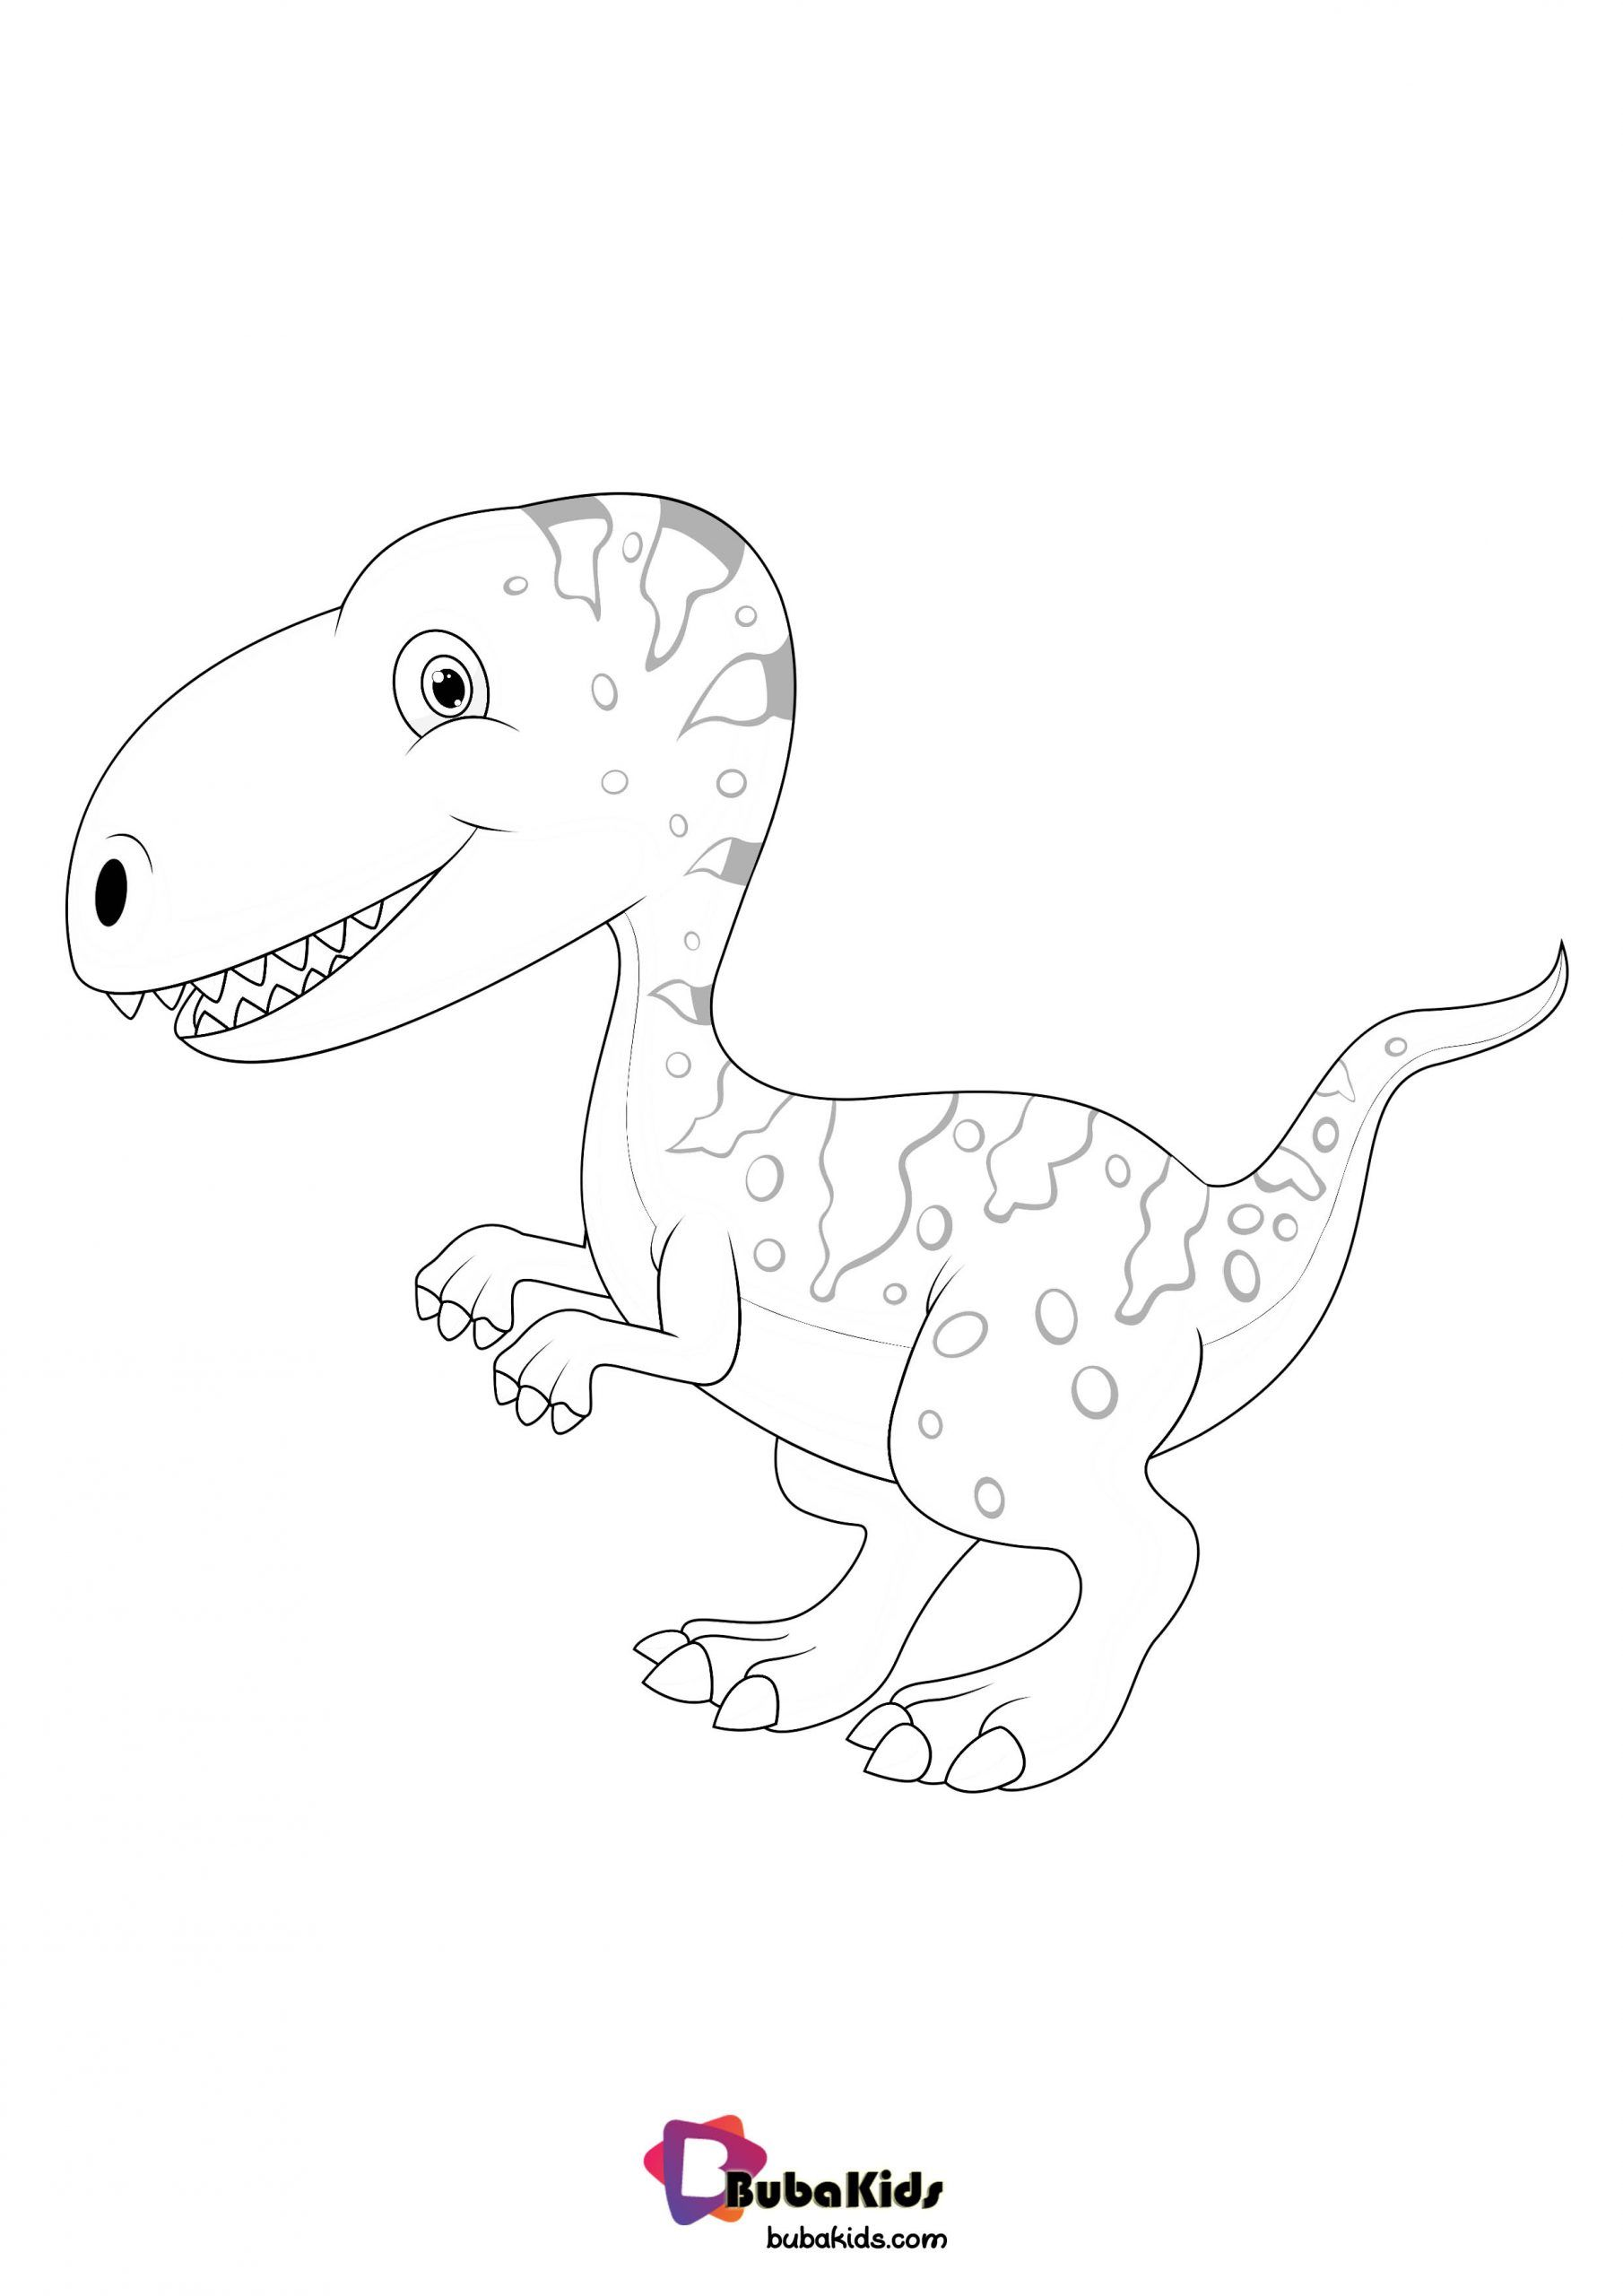 Baby Velociraptor Dinosaurs Coloring Page Collection Of Dinosaurs Coloring Pages For Tee Dinosaur Coloring Pages Puppy Coloring Pages Dinosaur Coloring Sheets